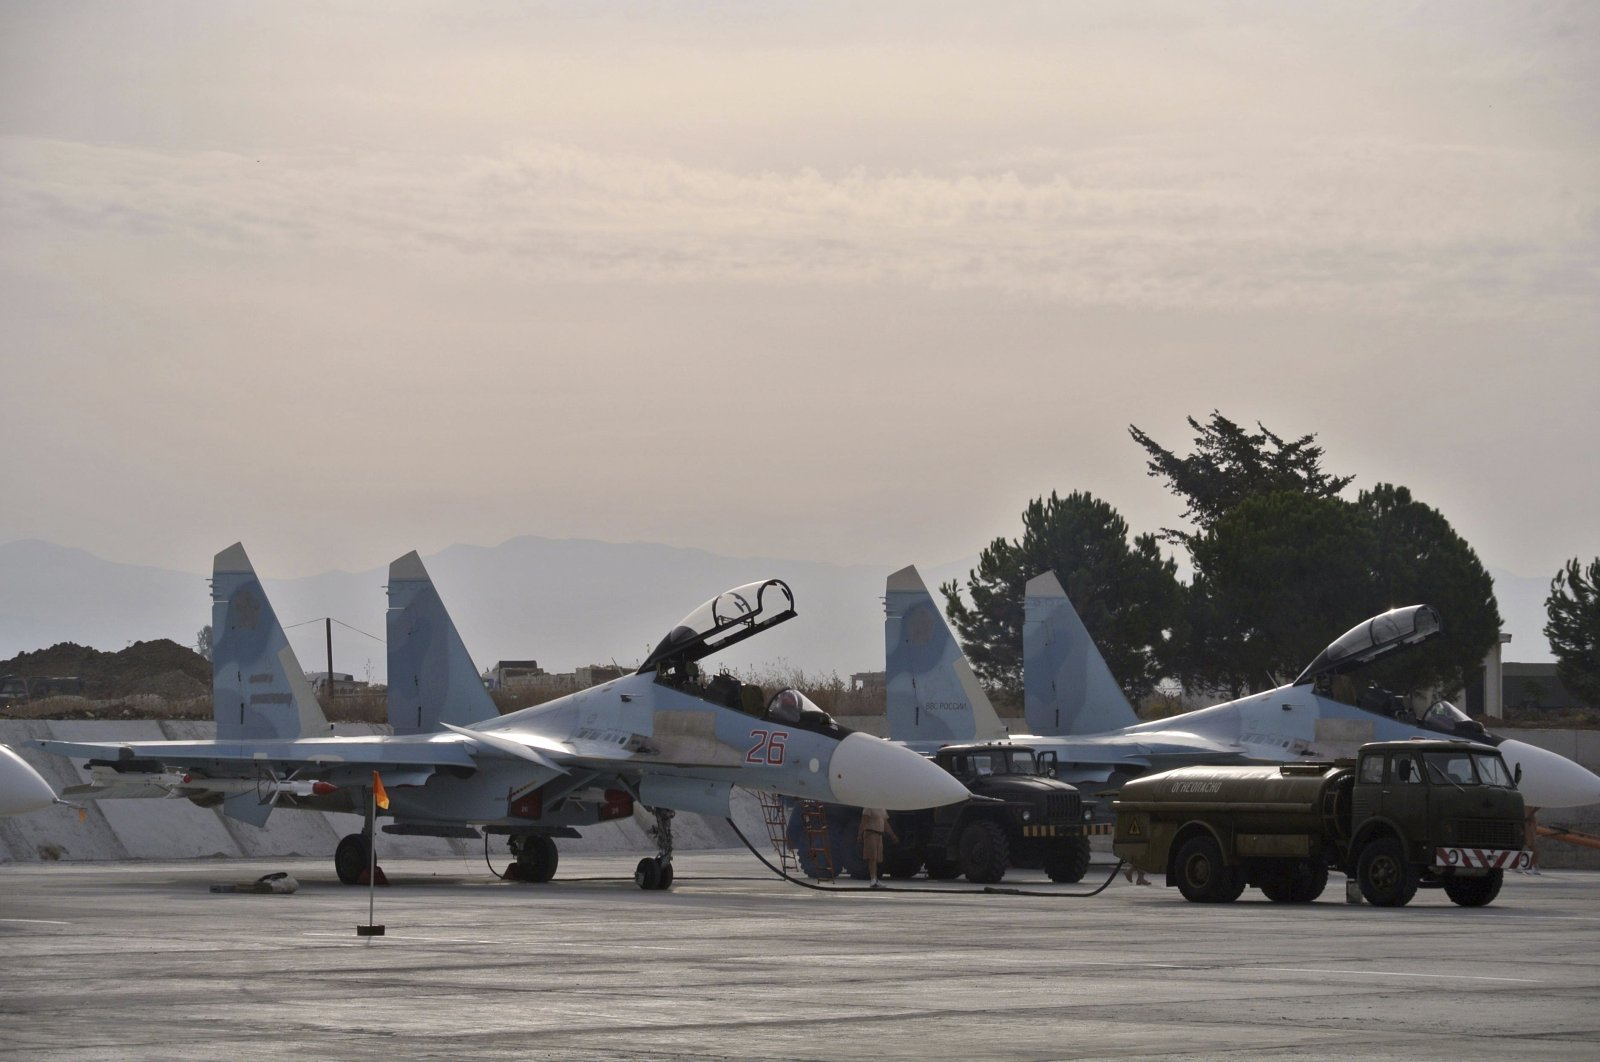 Russian fighter jets are parked in preparation for combat action at Hemeimeem air base, Syria, Oct. 22, 2015. (AP Photo)